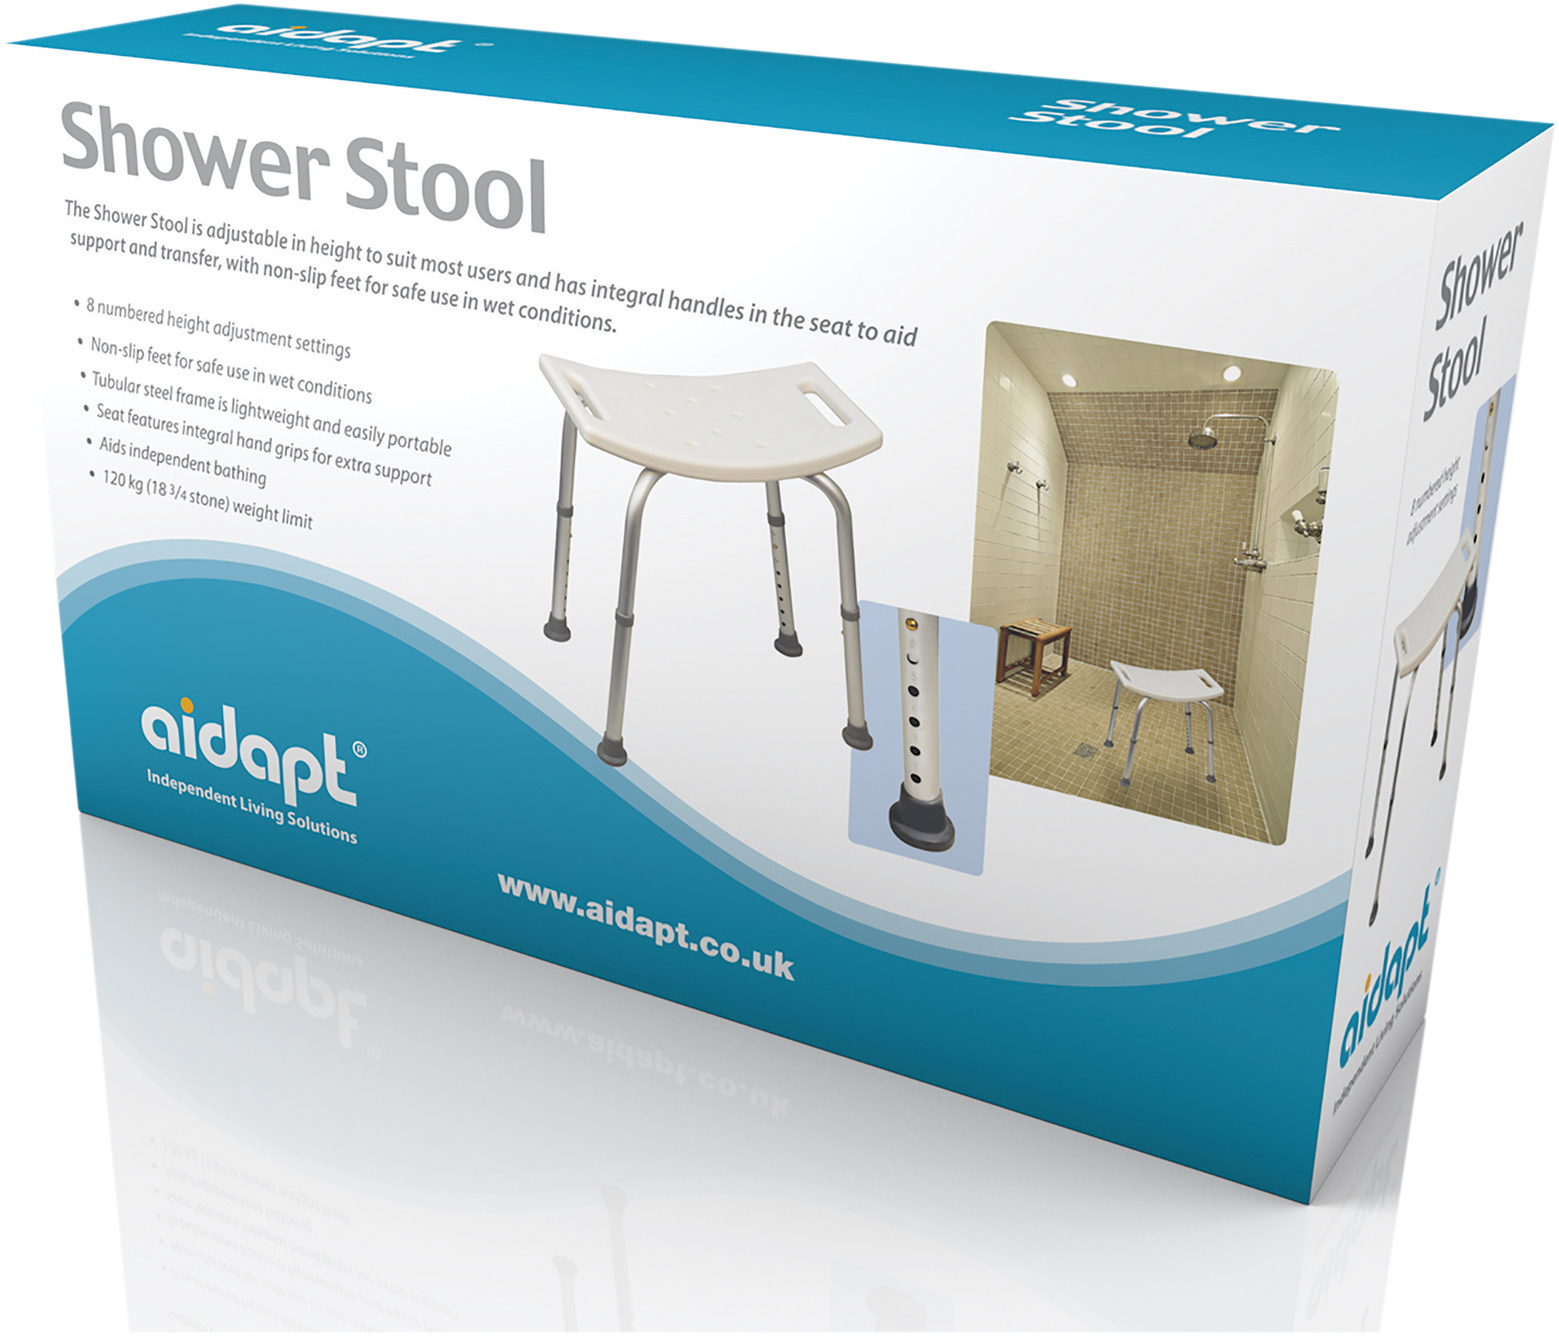 Shower Stool Aidapt Mobility Aids & Independent Living Solutions ...